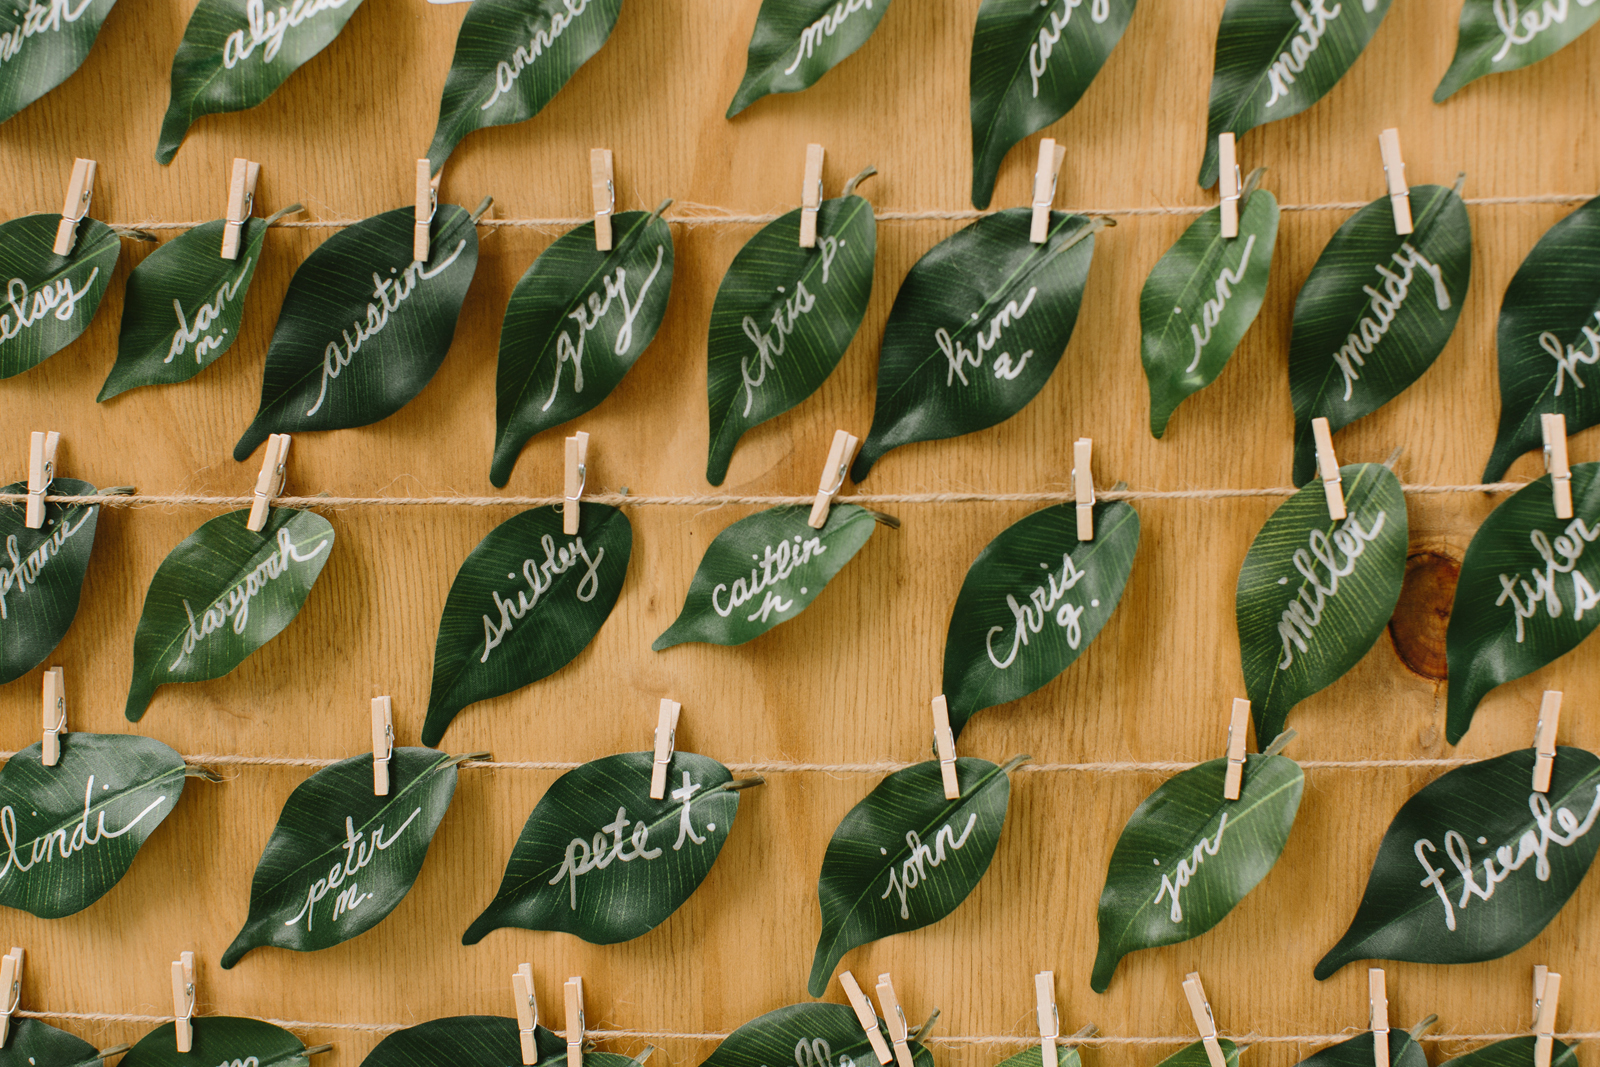 Leaf seating chart for wedding at Bridal Veil Lakes in Corbett, Oregon